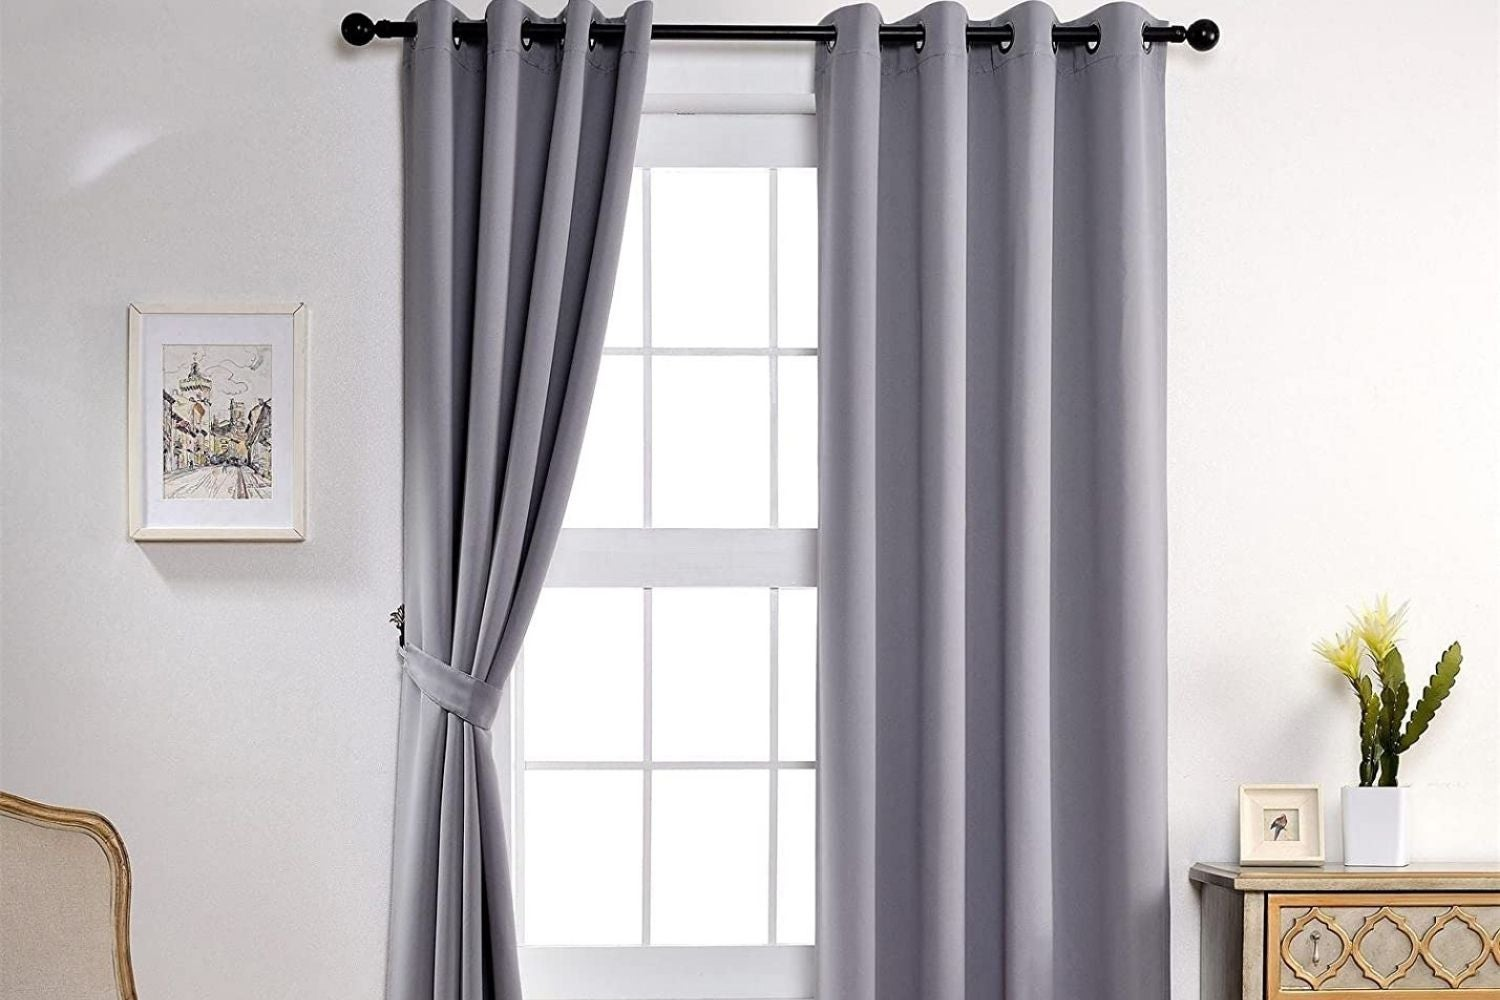 The Best Soundproof Curtains For The Home Bob Vila